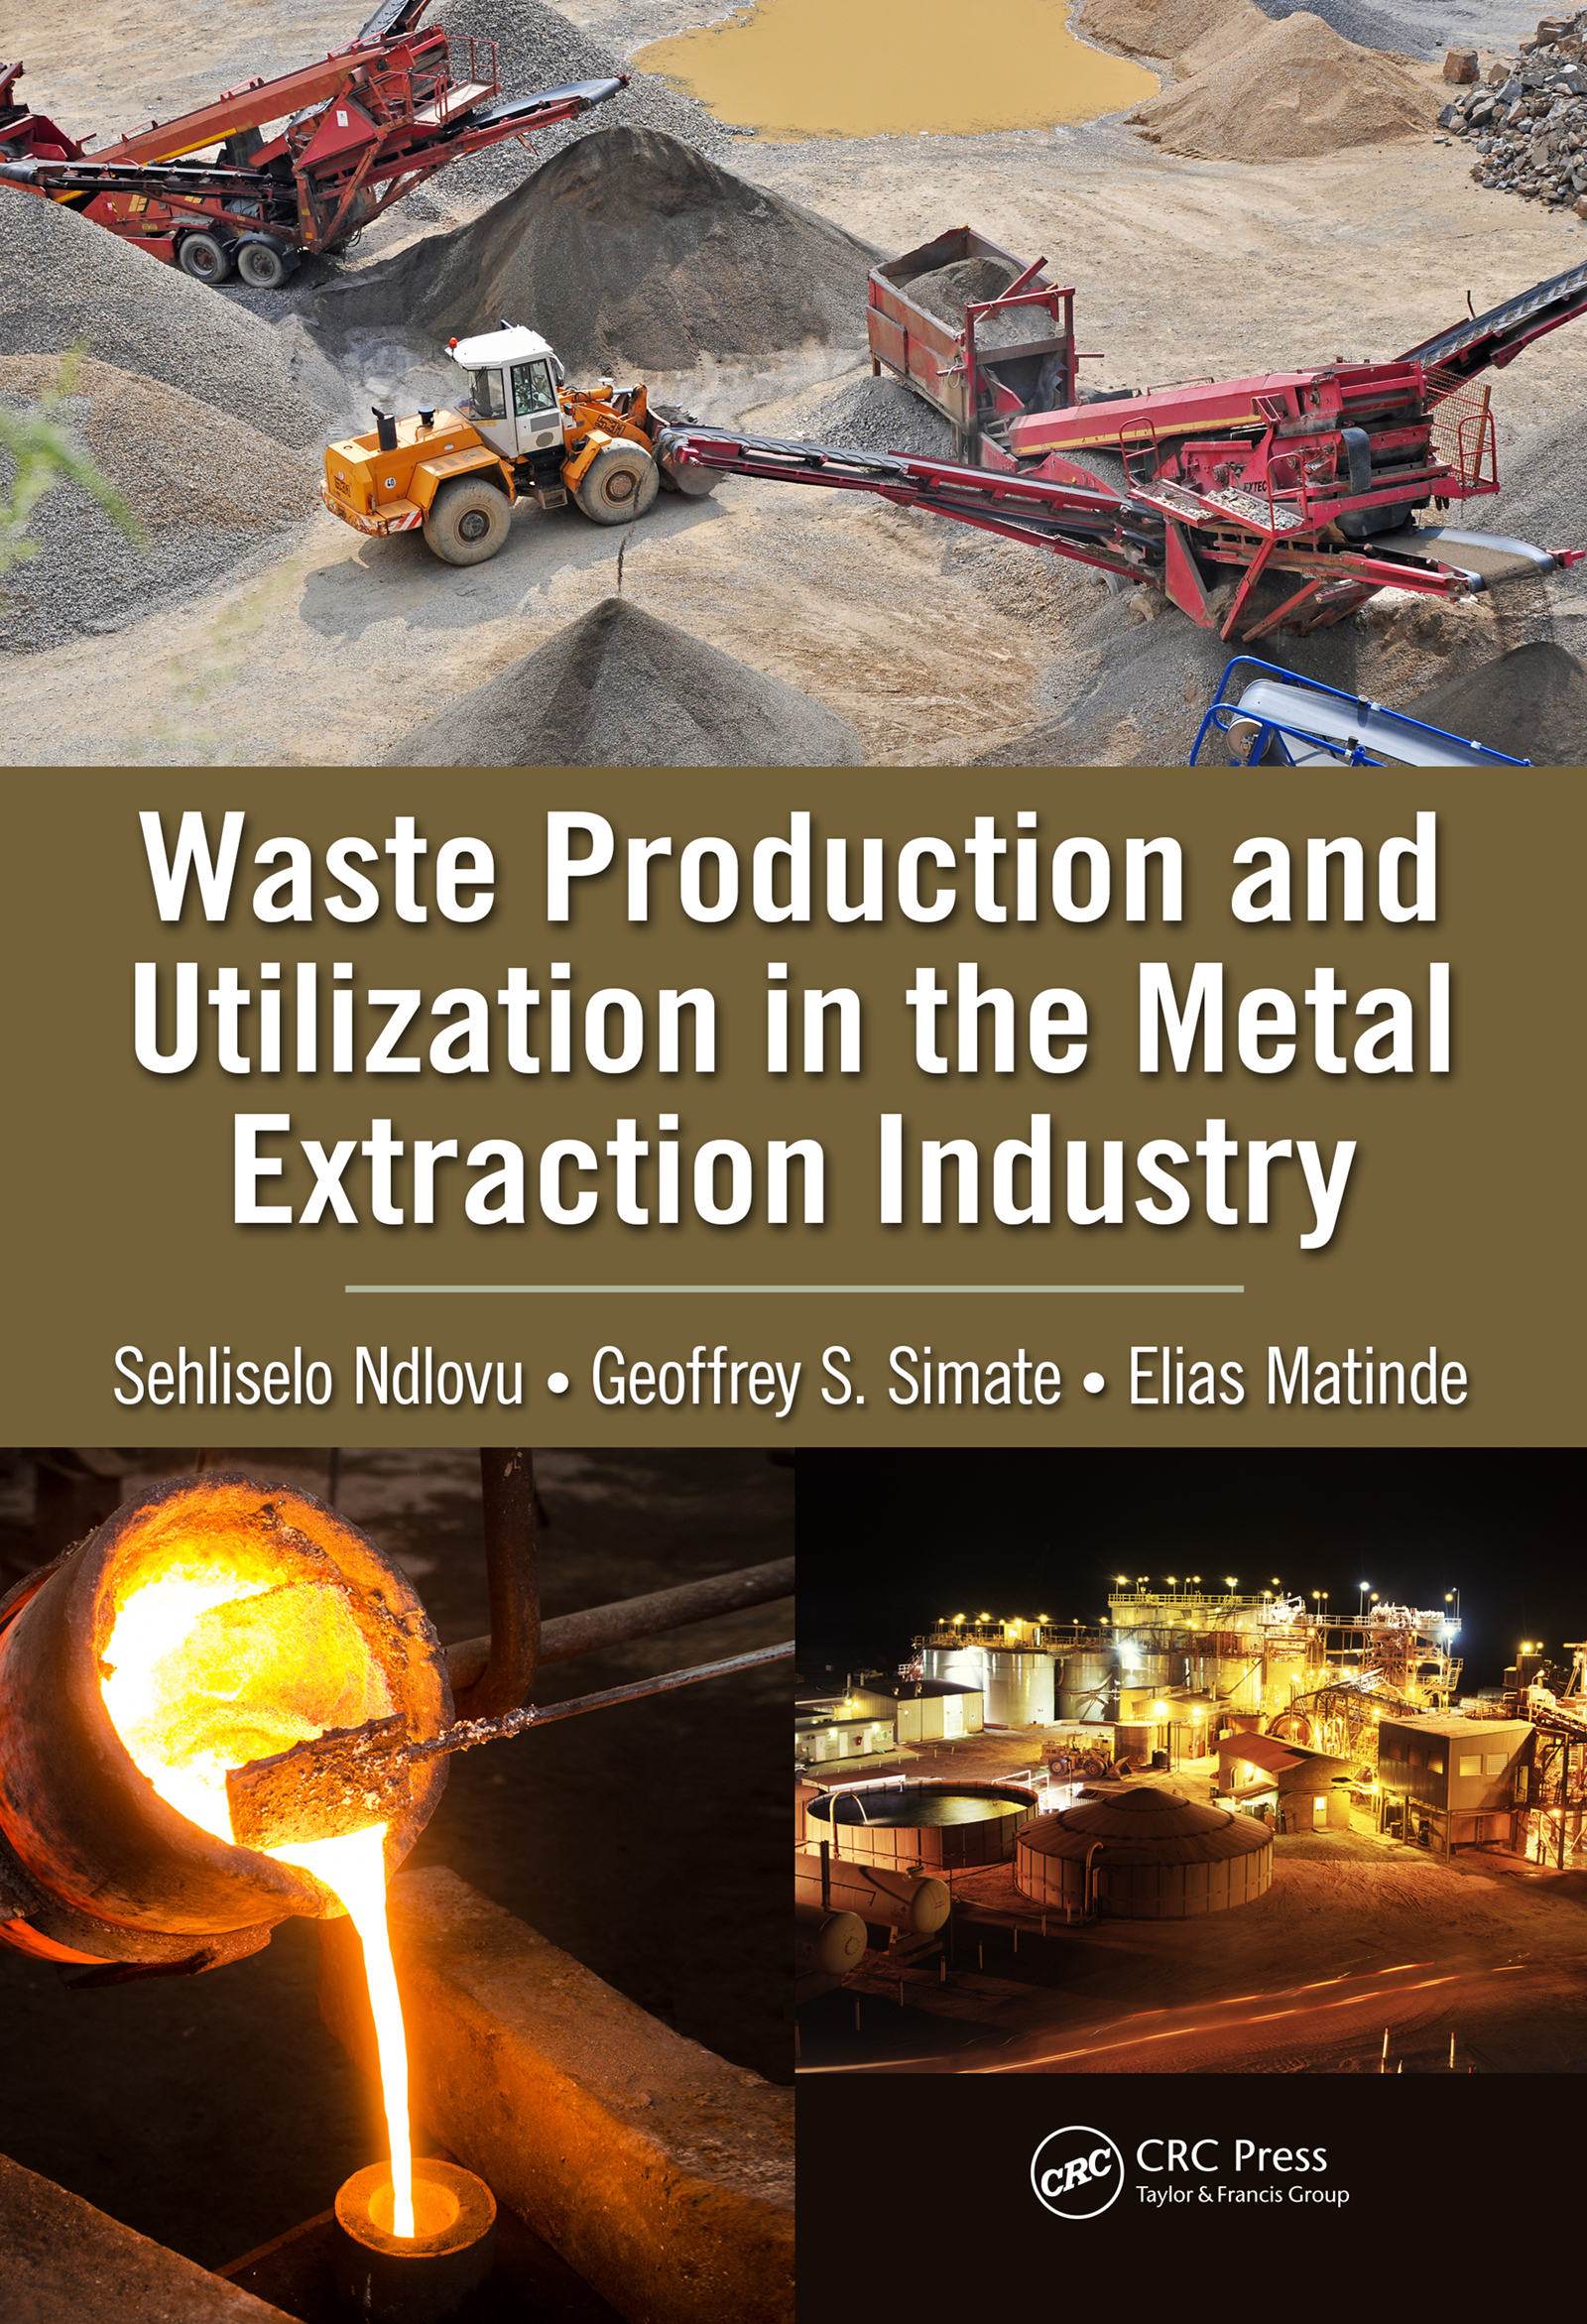 Legislation and Policies Governing the Environmental and Health Impacts of Metallic Waste